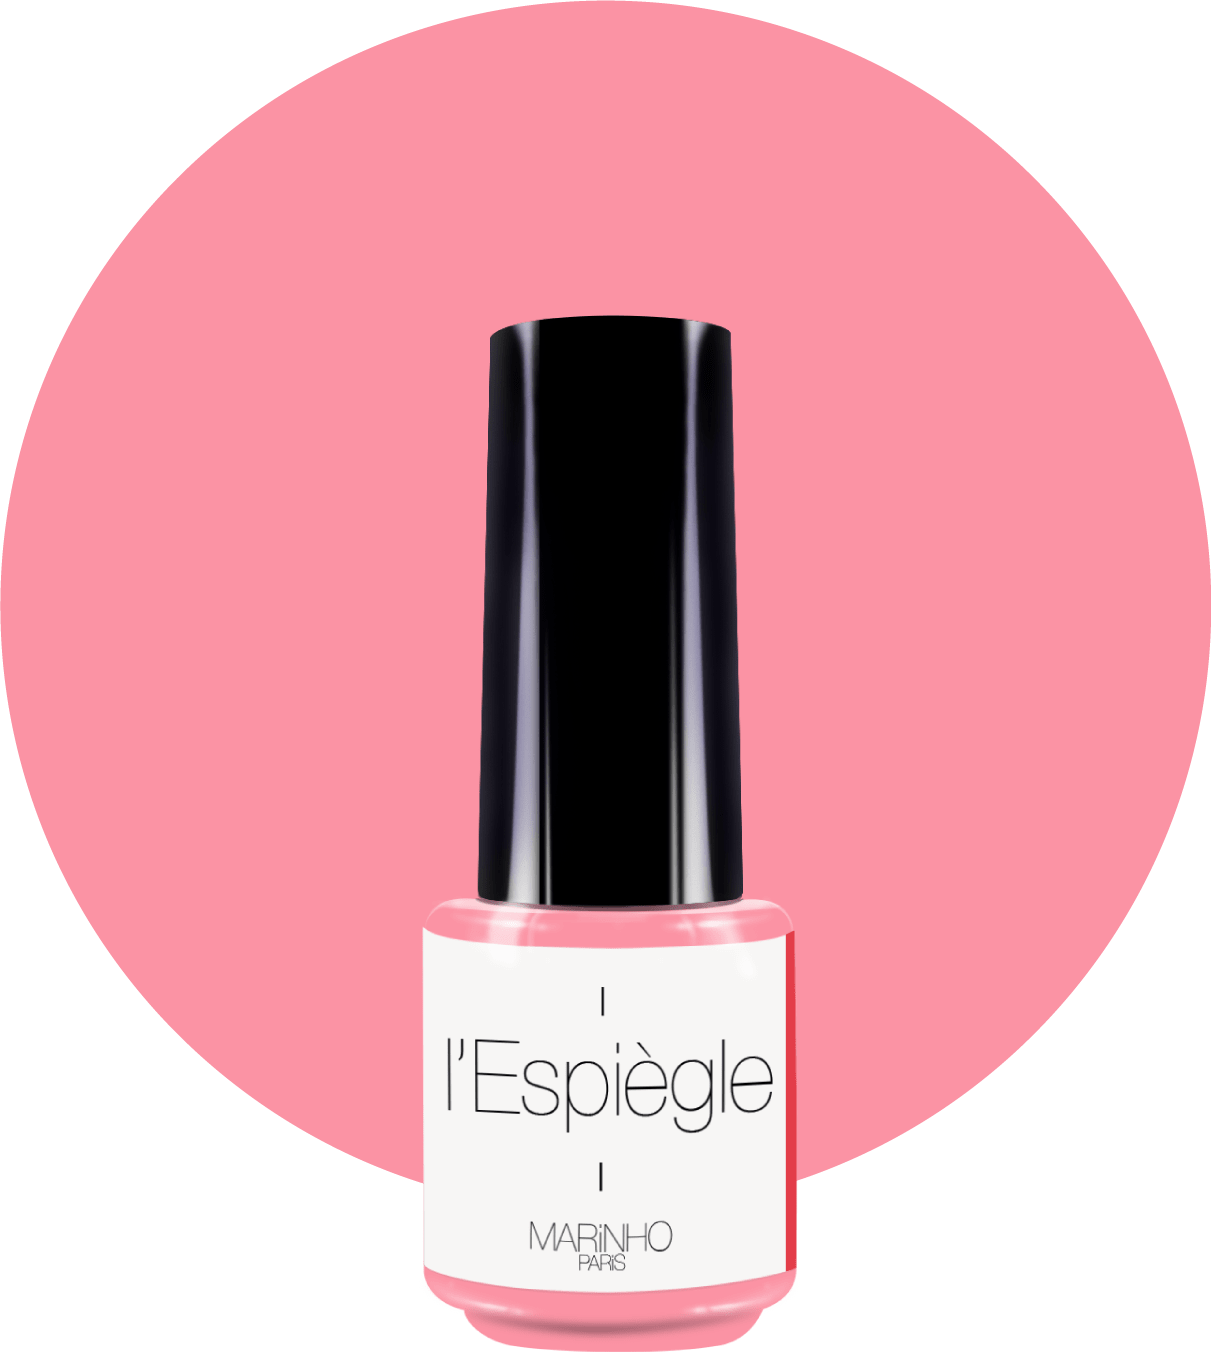 vernis semi-permanent rose marinho paris sur rond rose